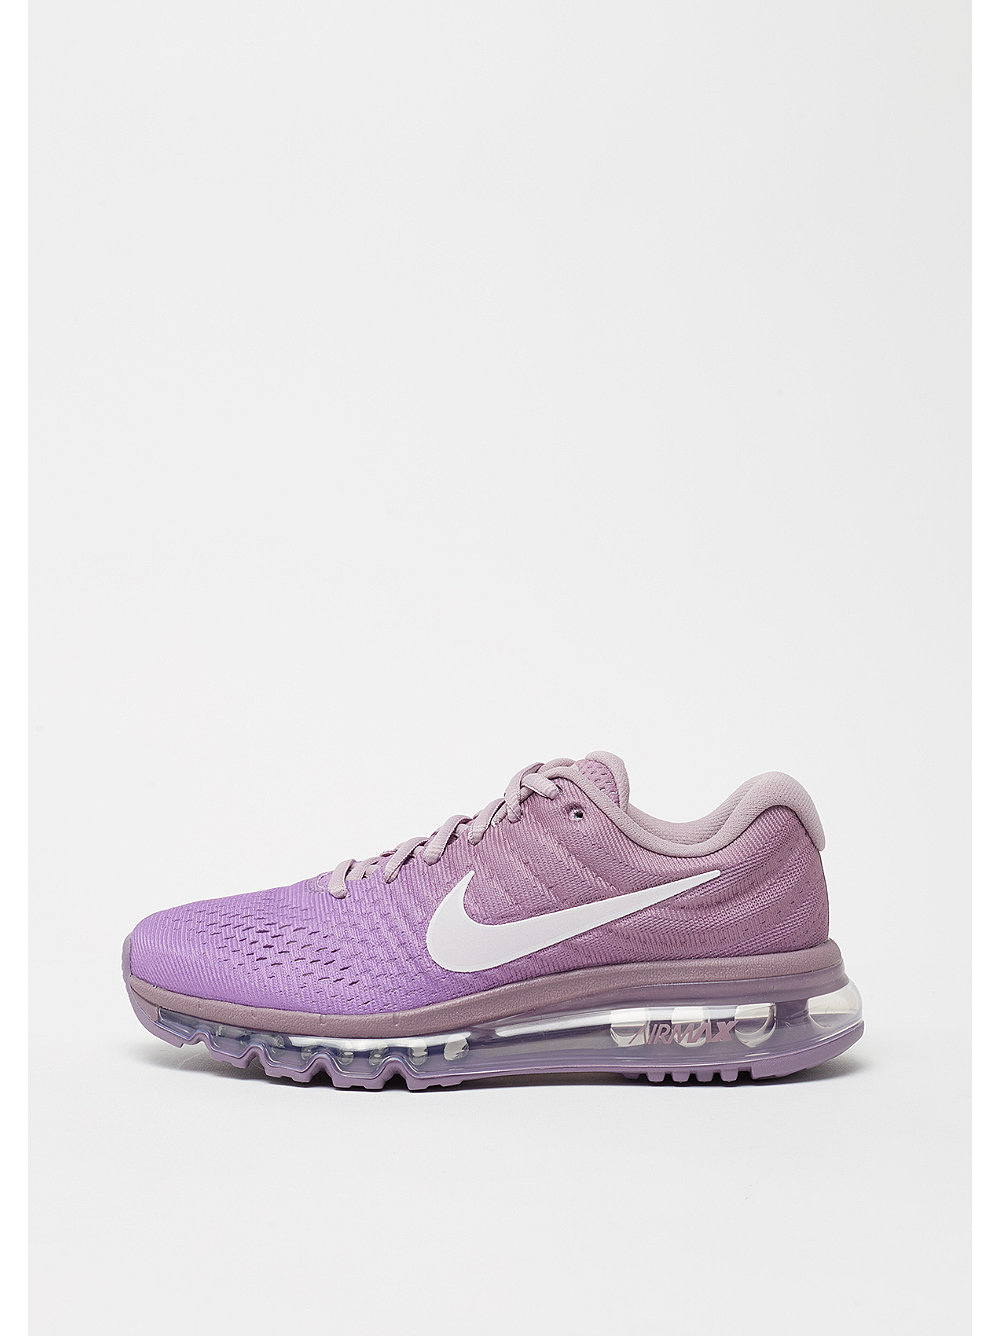 NIKE Running Air Max 2017 plum fog/iced lavender/violet dust lila 36,40,38,36.5,37.5,38.5,39,40.5